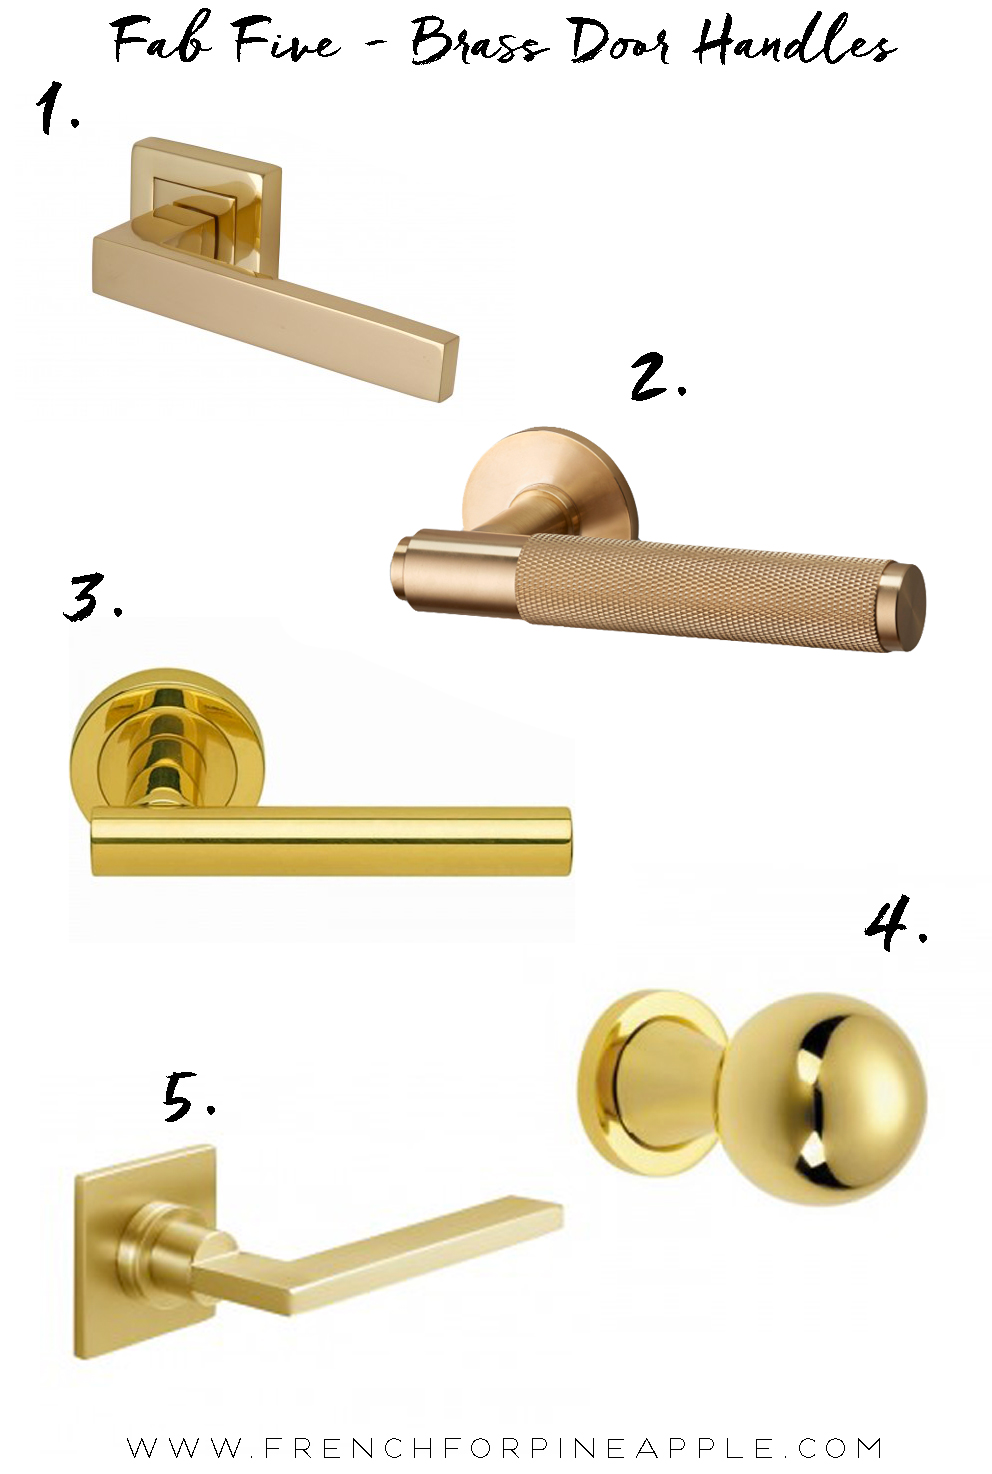 french for pineapple blog fab five brass door handles